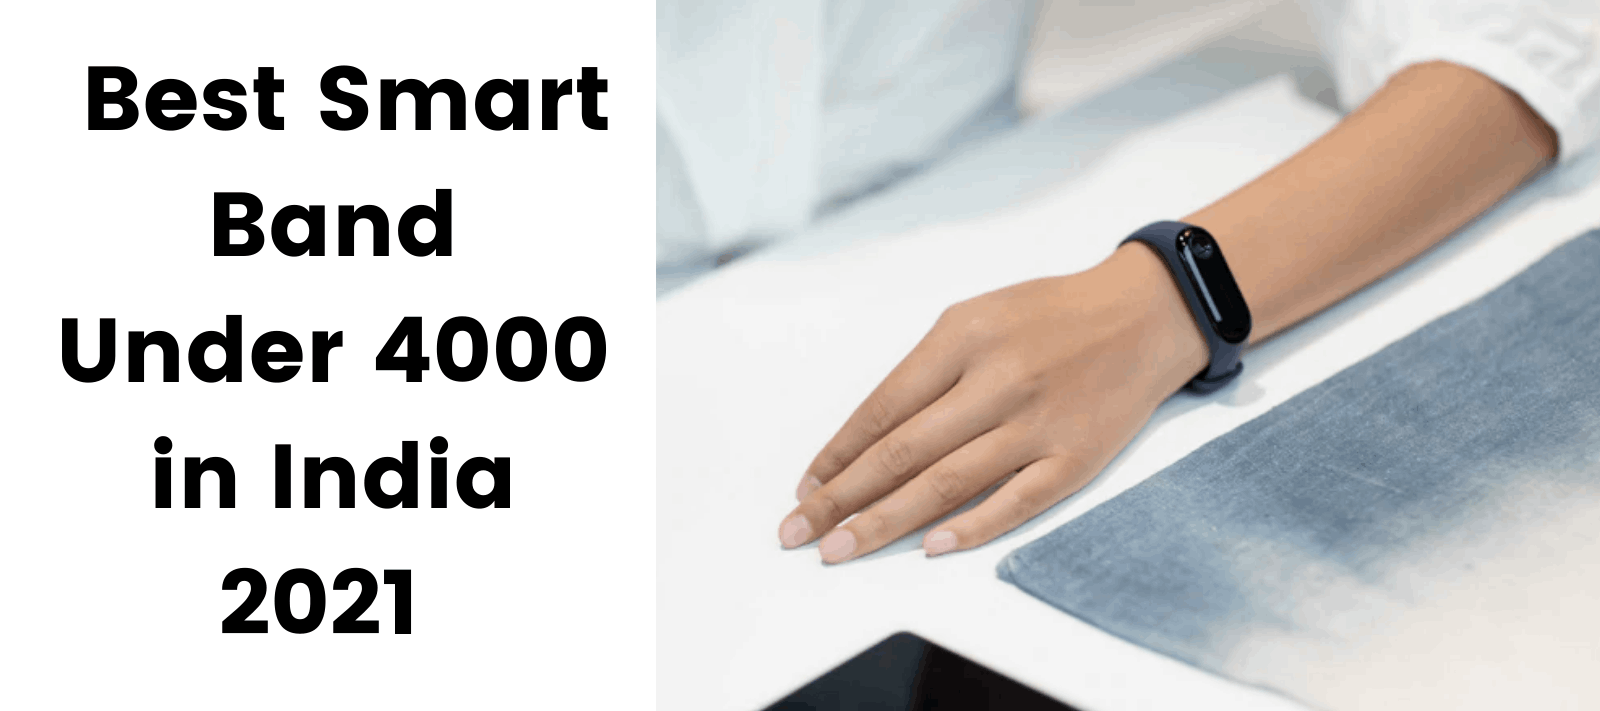 You are currently viewing Best Smart Band Under 4000 in India 2021